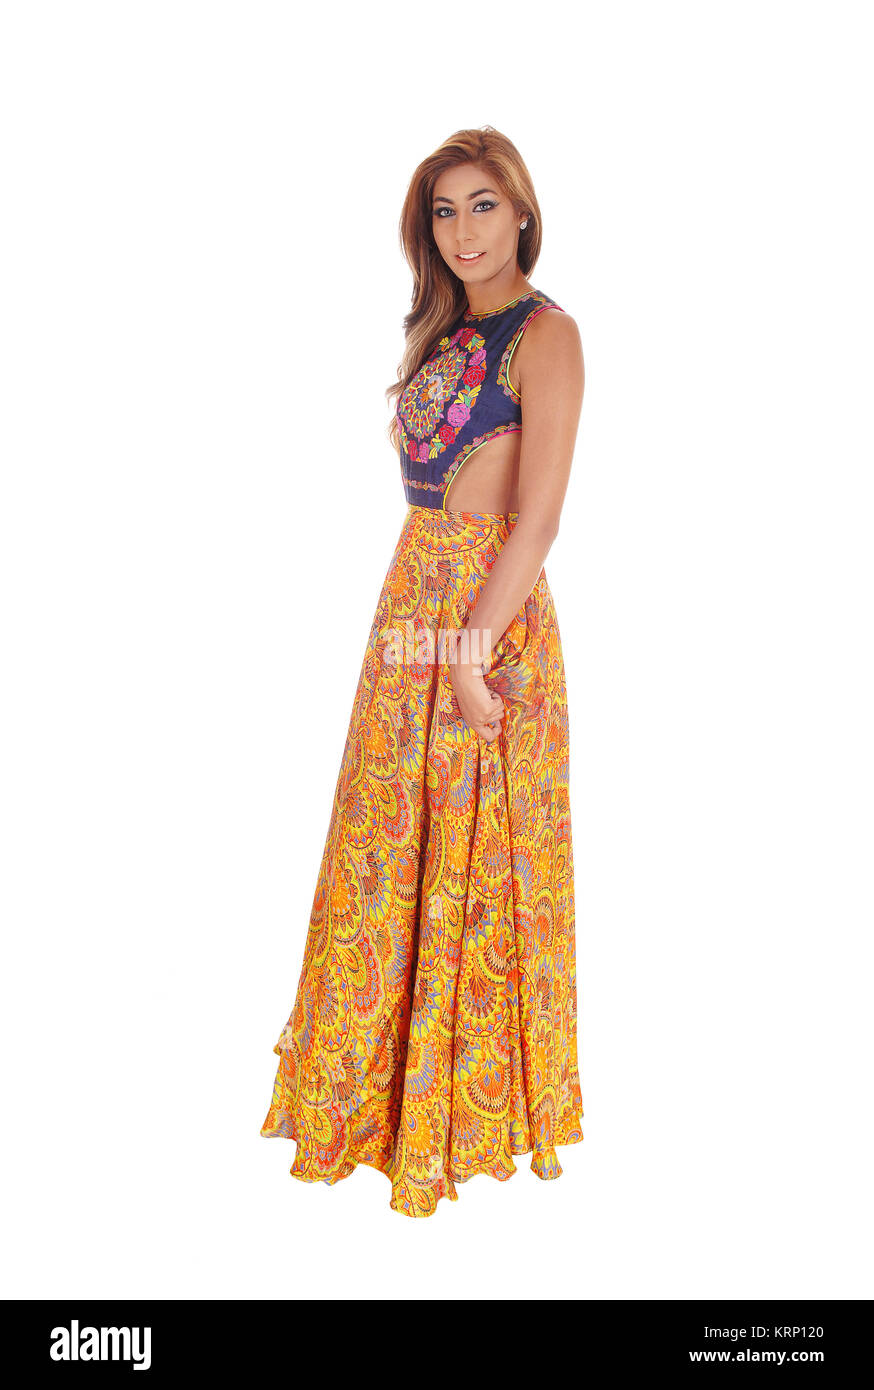 Beautiful woman in long dress. - Stock Image